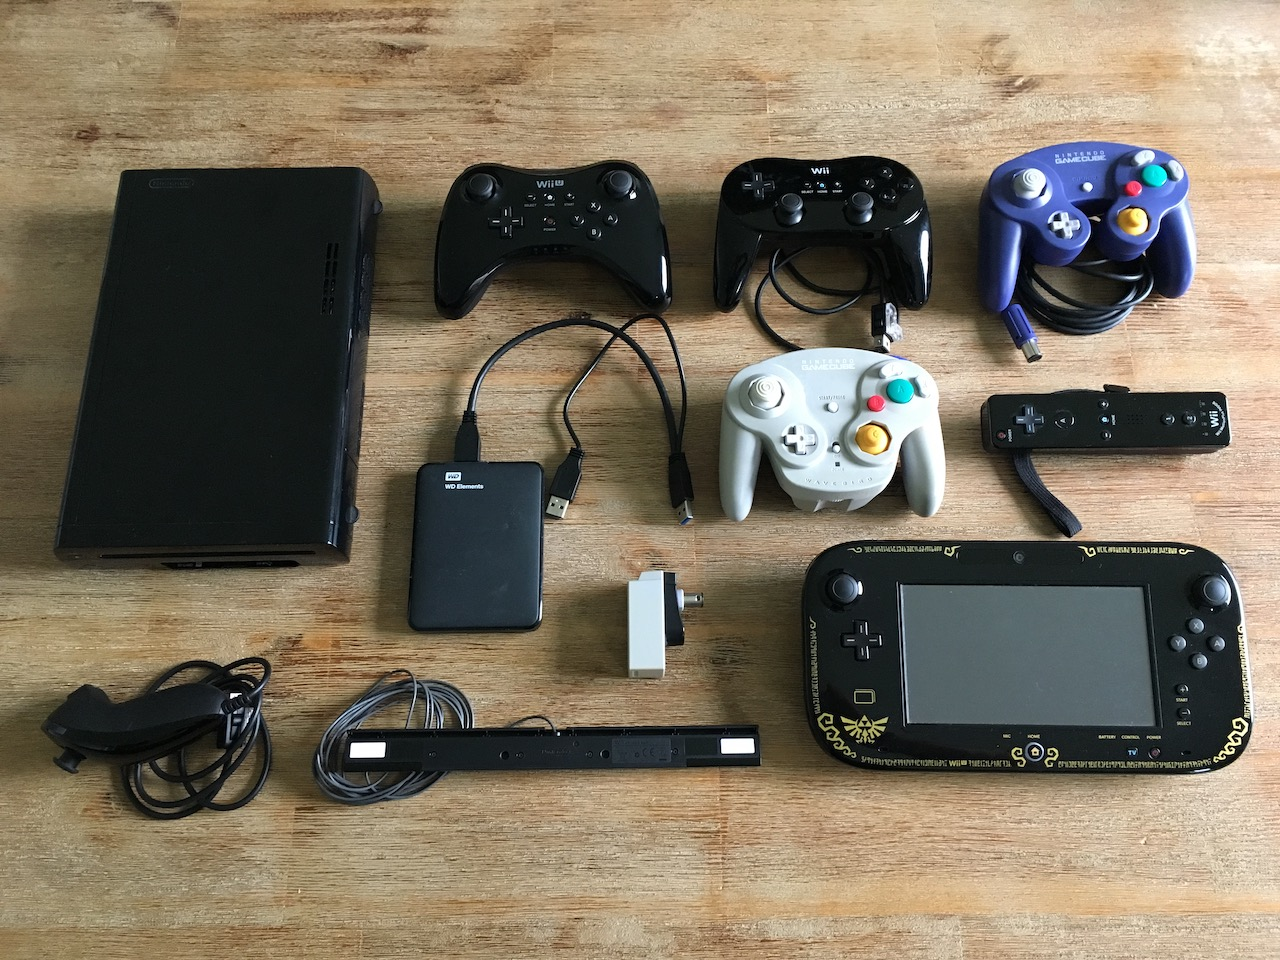 A Wii U console with all its controllers and peripherals